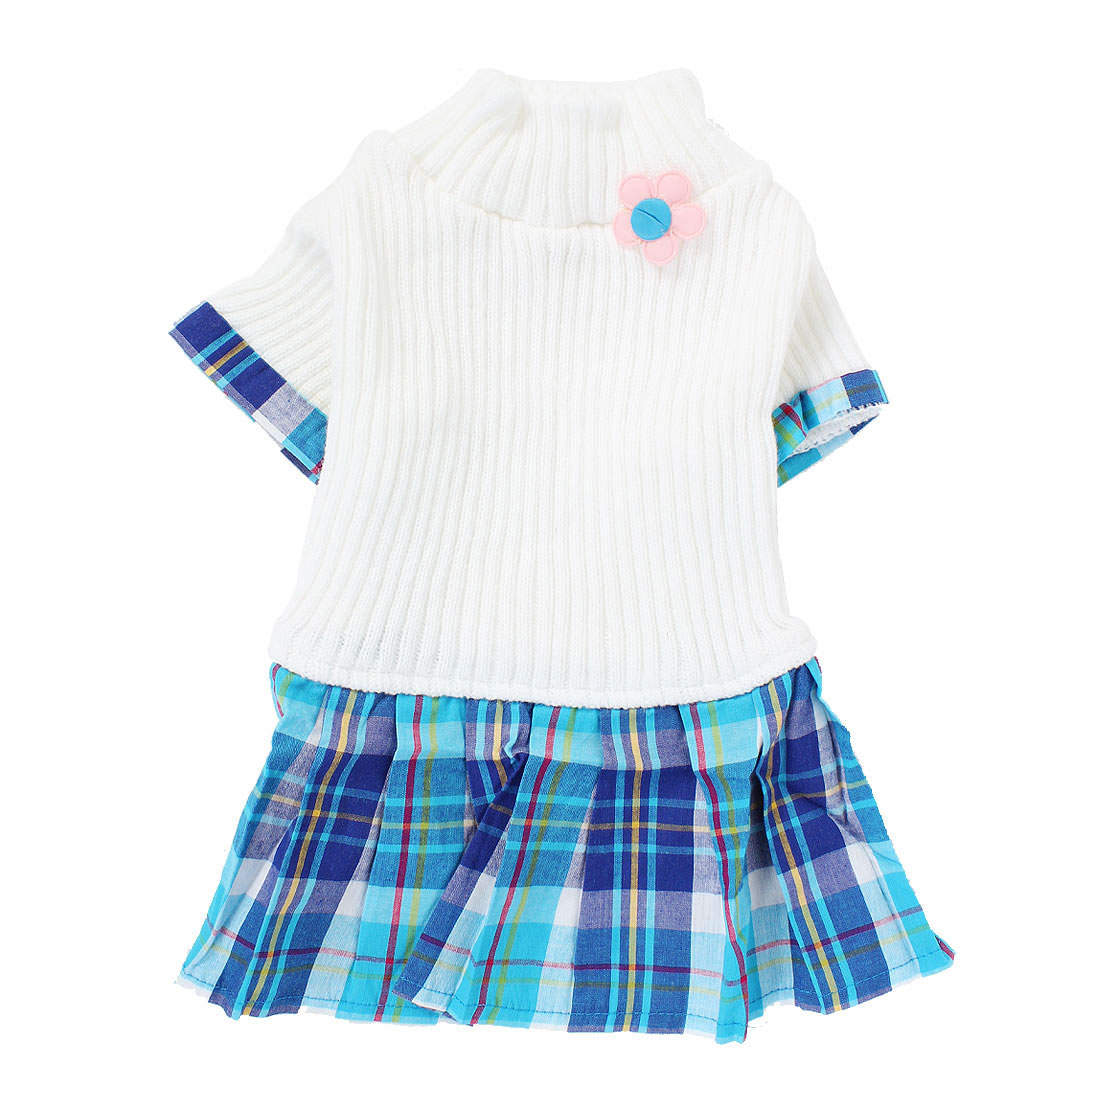 Pet Dog Warm Knitwear Sweater Plaid Pattern Dress Skirt Apparel White XS